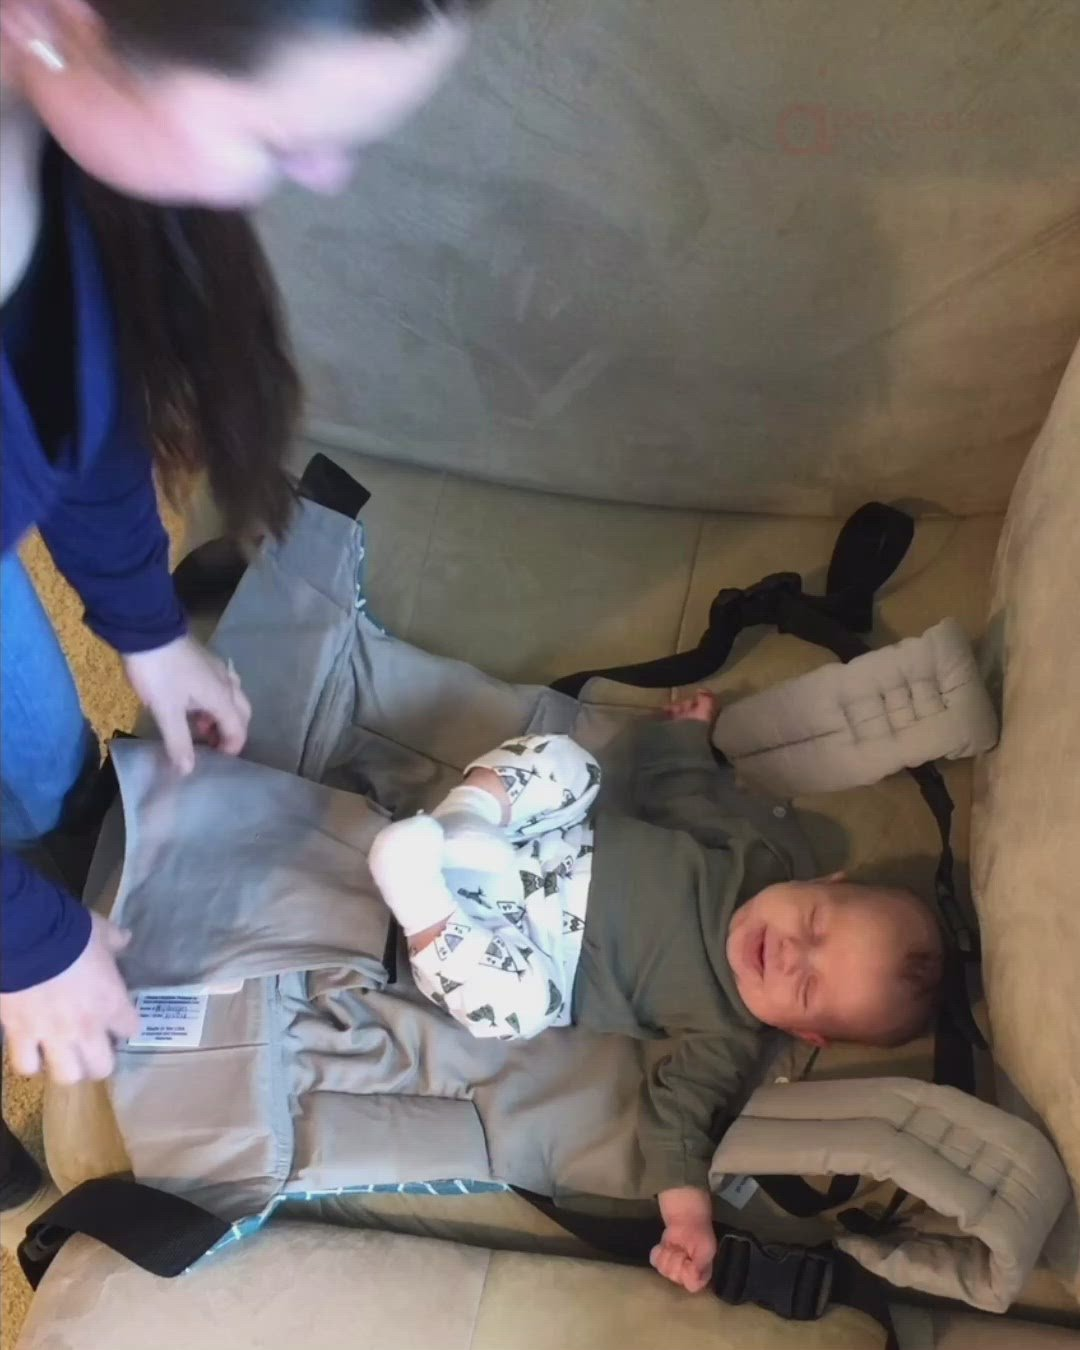 Video demonstration of the Olives and Applesauce Hydrogen carrier. A mother buckles her baby into the harness, then puts the carrier on